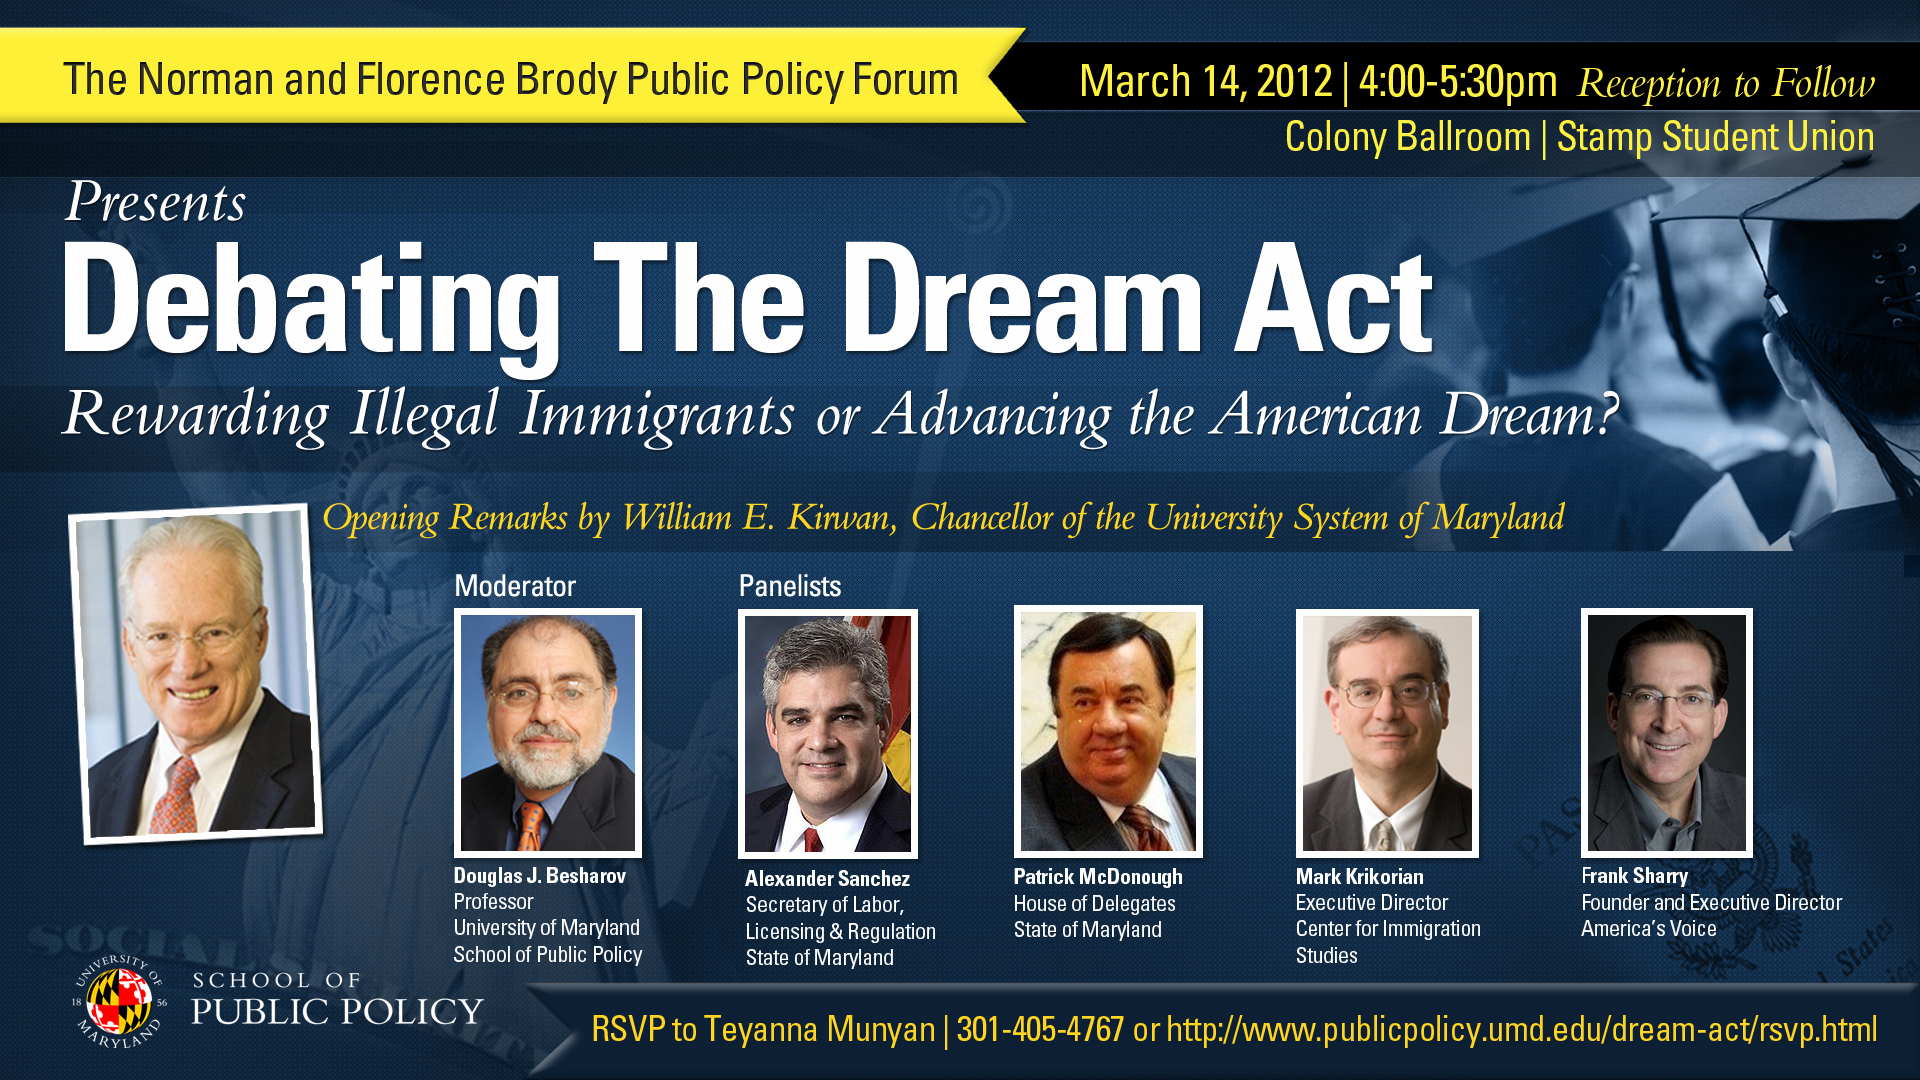 Pro's and Con's of the DREAM Act?